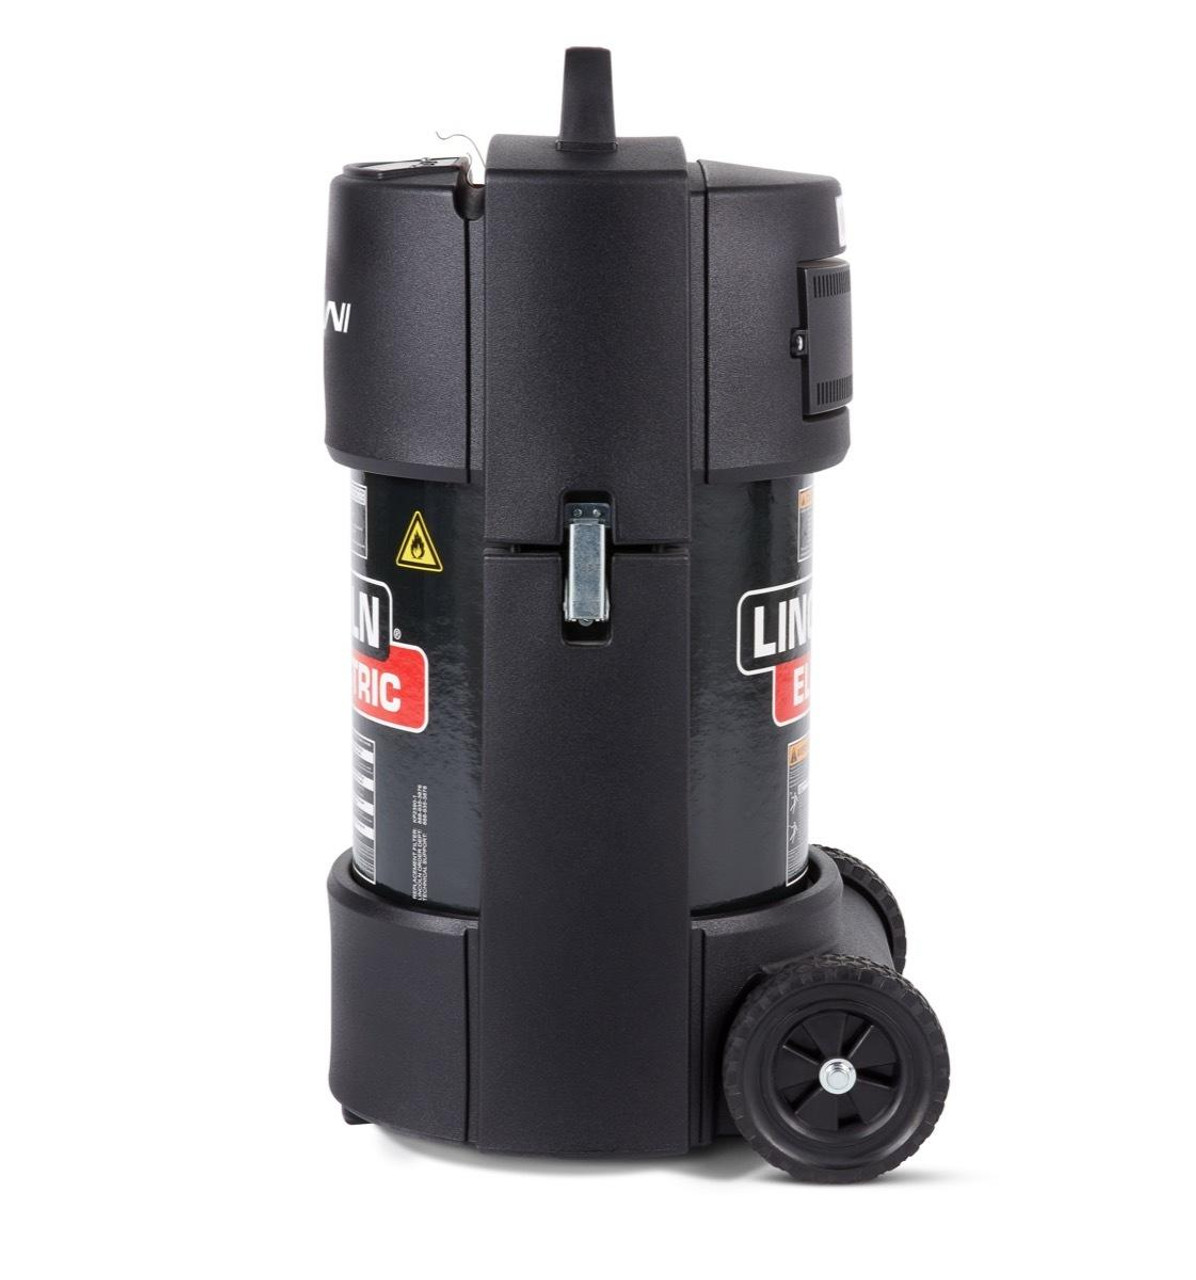 Lincoln Electric Lincoln Electric X-Tractor MINI Portable Welding Fume Extractor 120/1/60 - K3972-3